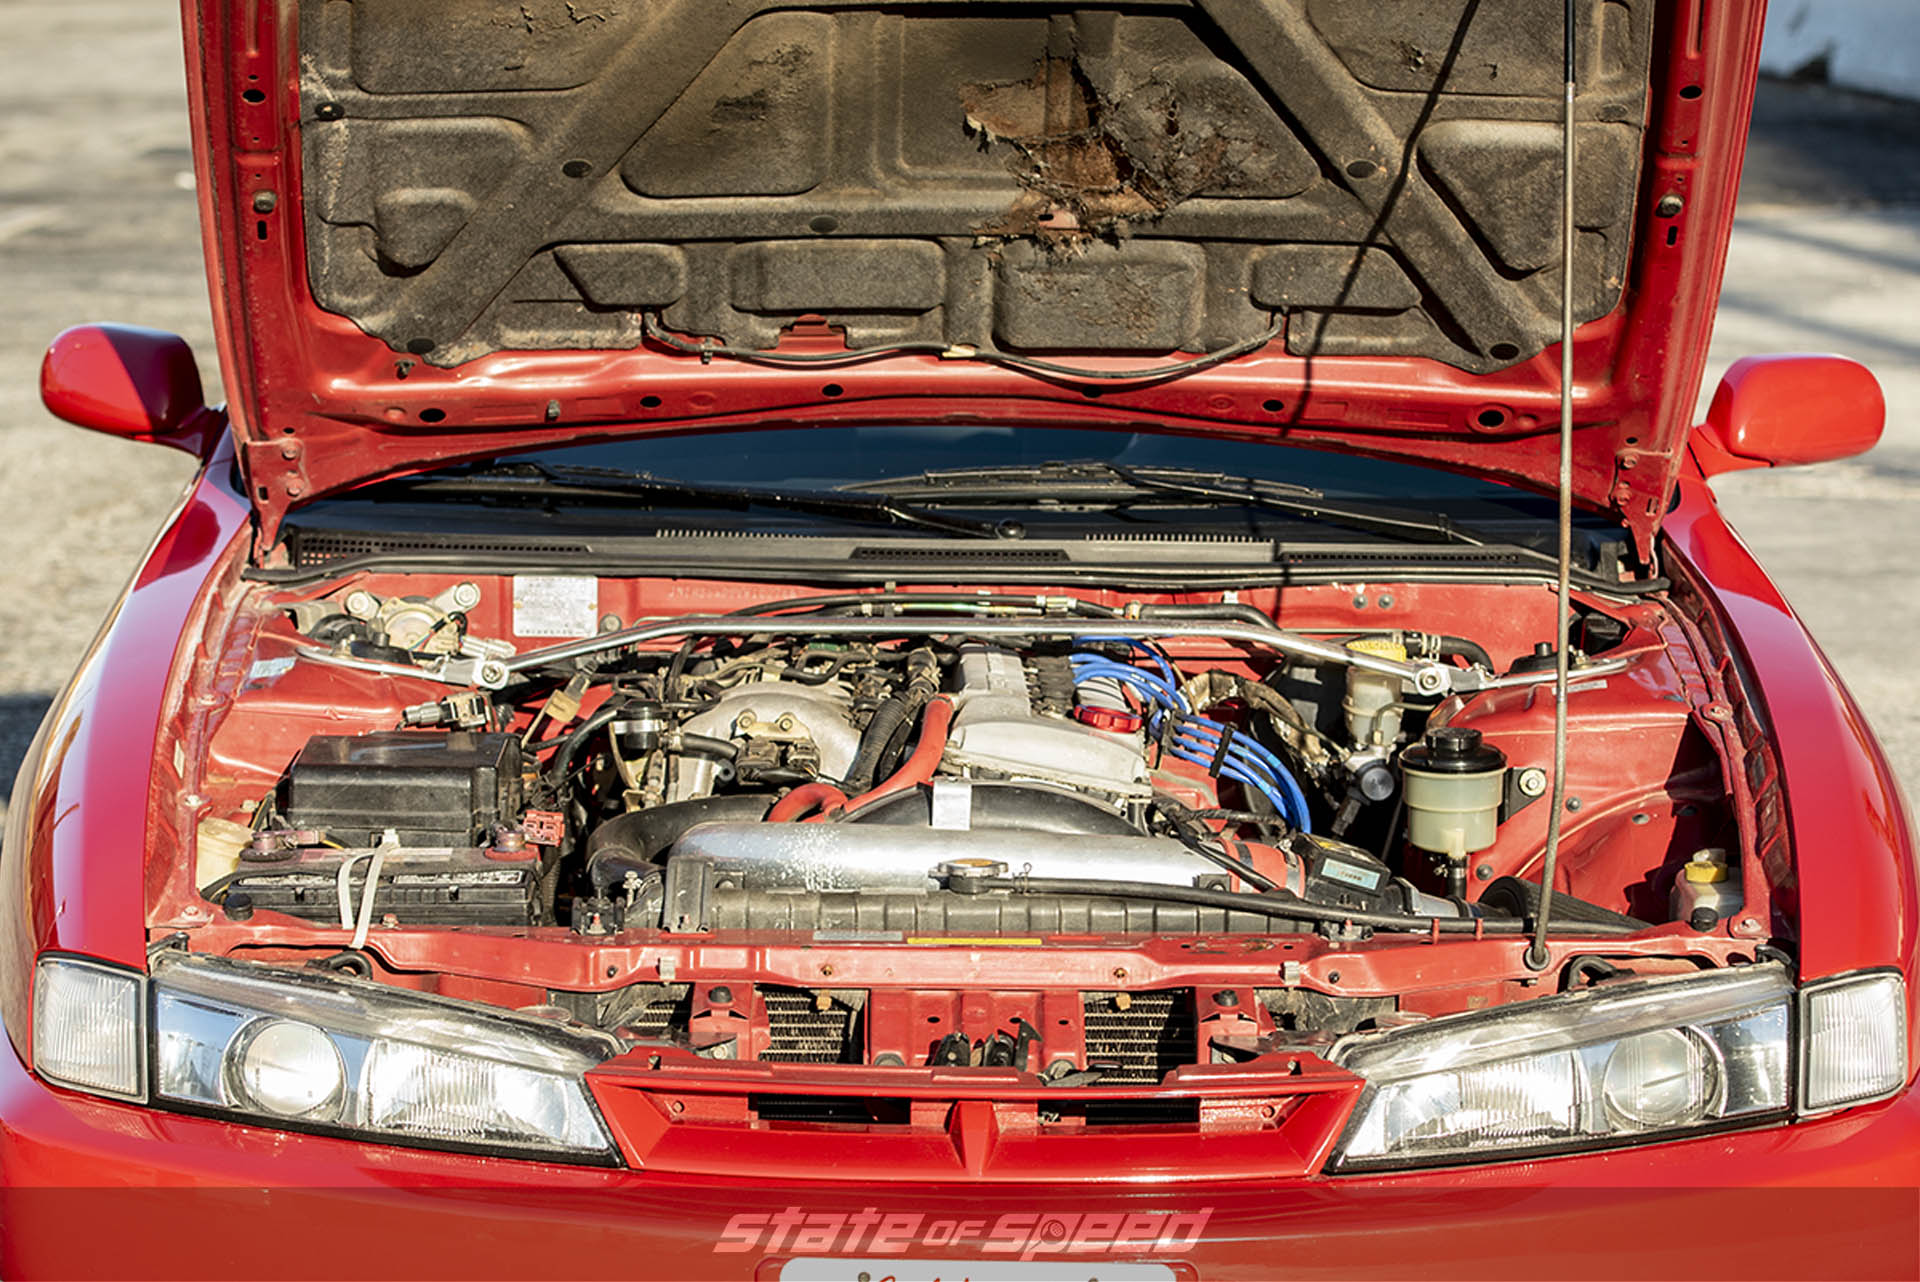 240sx with a KA24DE engine